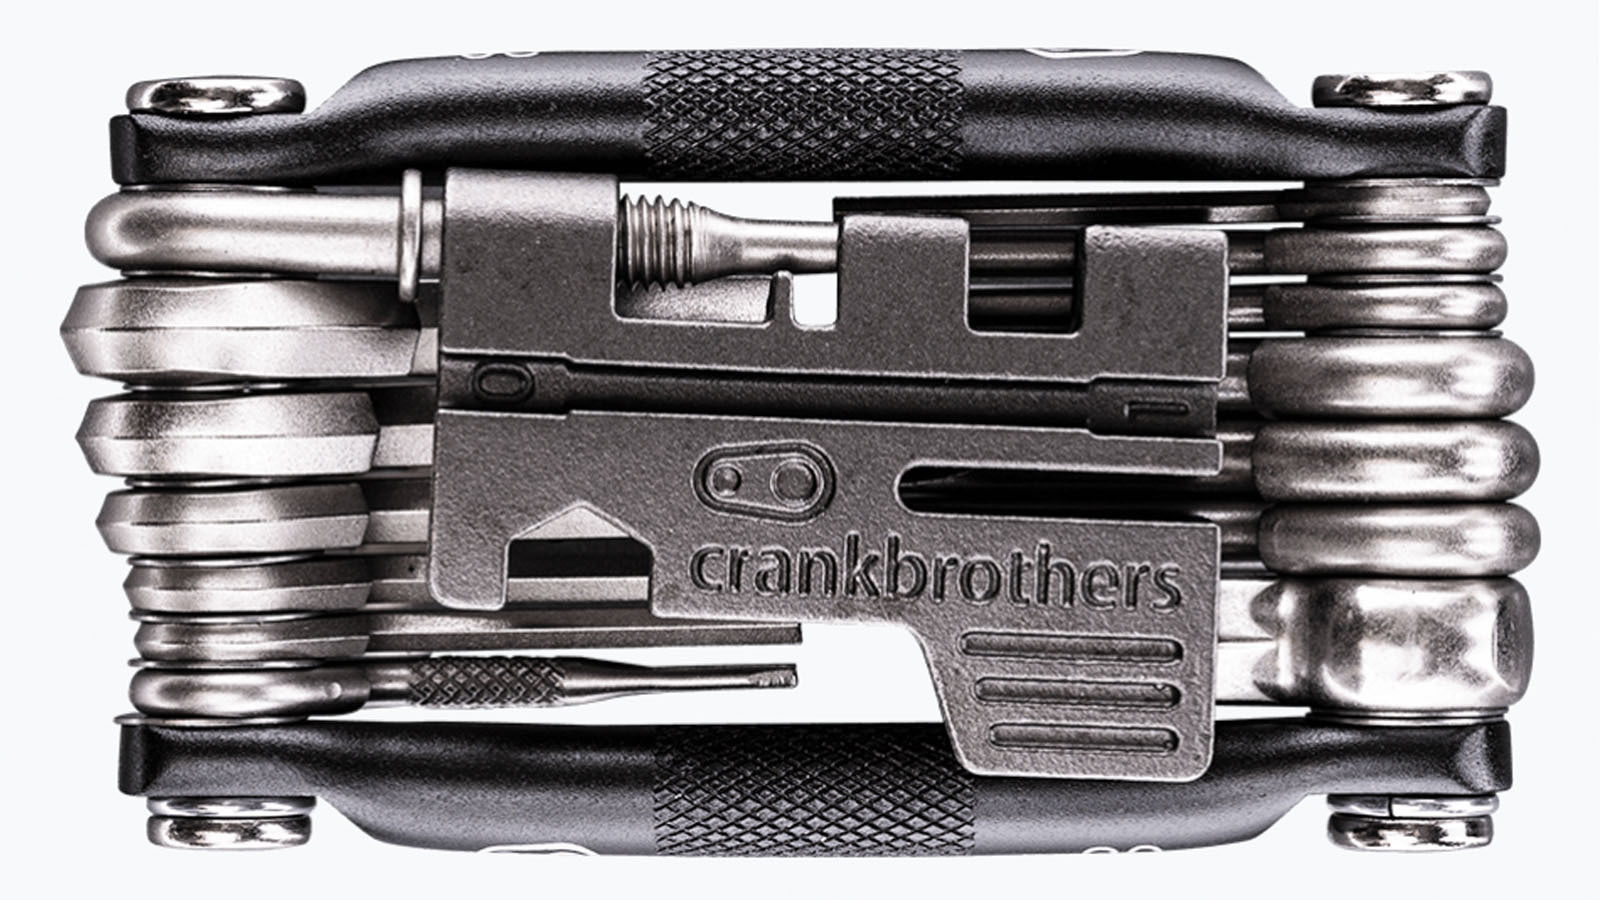 All of Your Trailside Repair Tools in One Package - Crankbrothers Launches the New M20 and M13